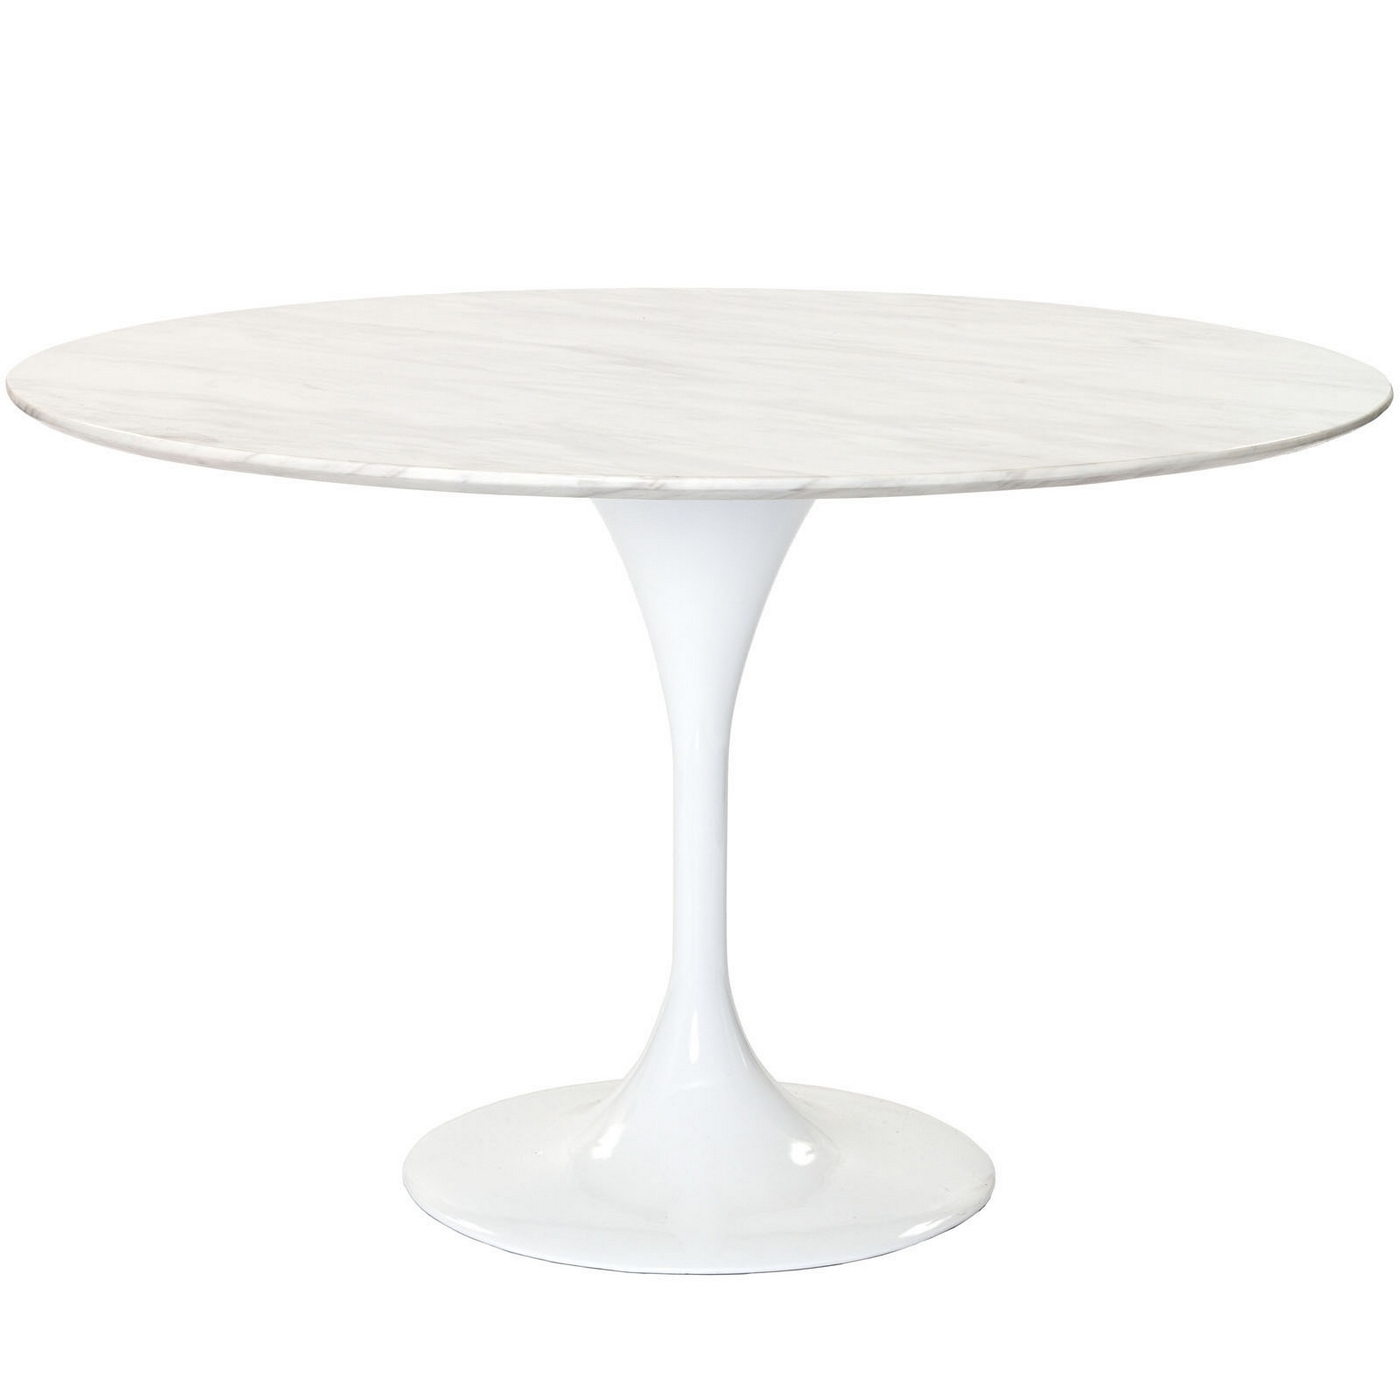 Lippa 48 round marble top dining table with lacquered for Round stone top dining table